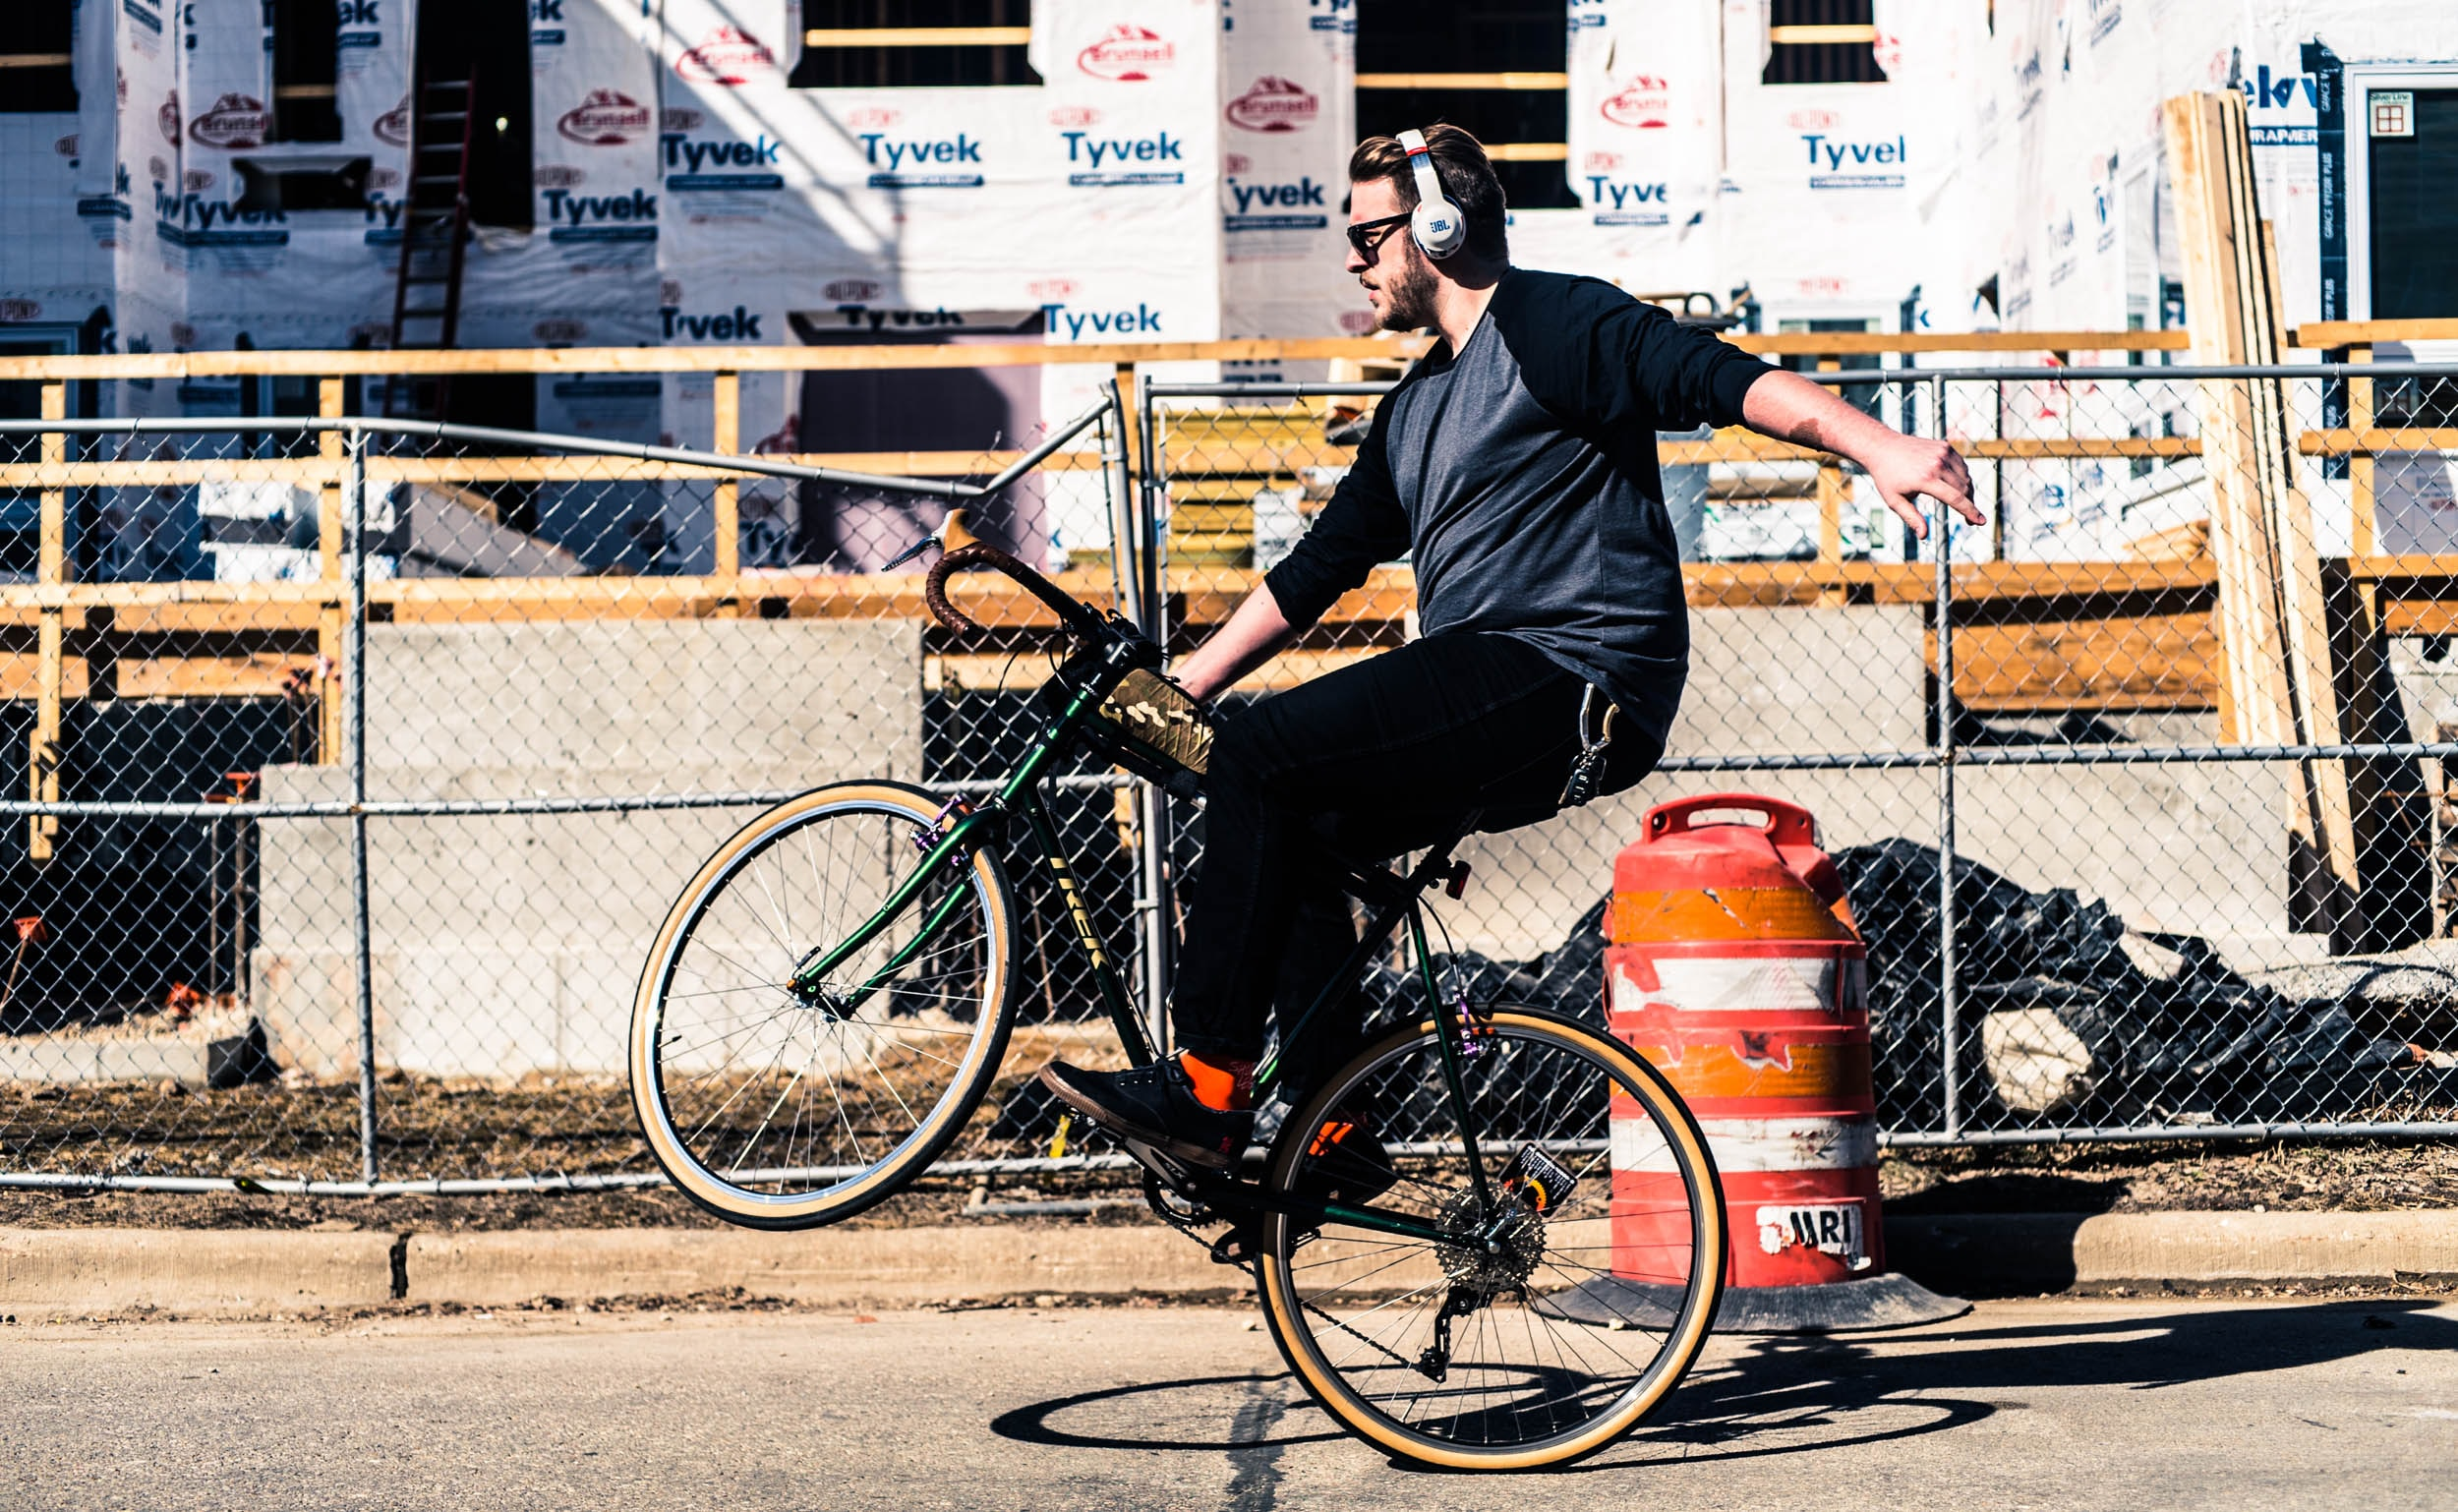 A bearded man wearing headphones does a wheelie on a bicycle by a construction site